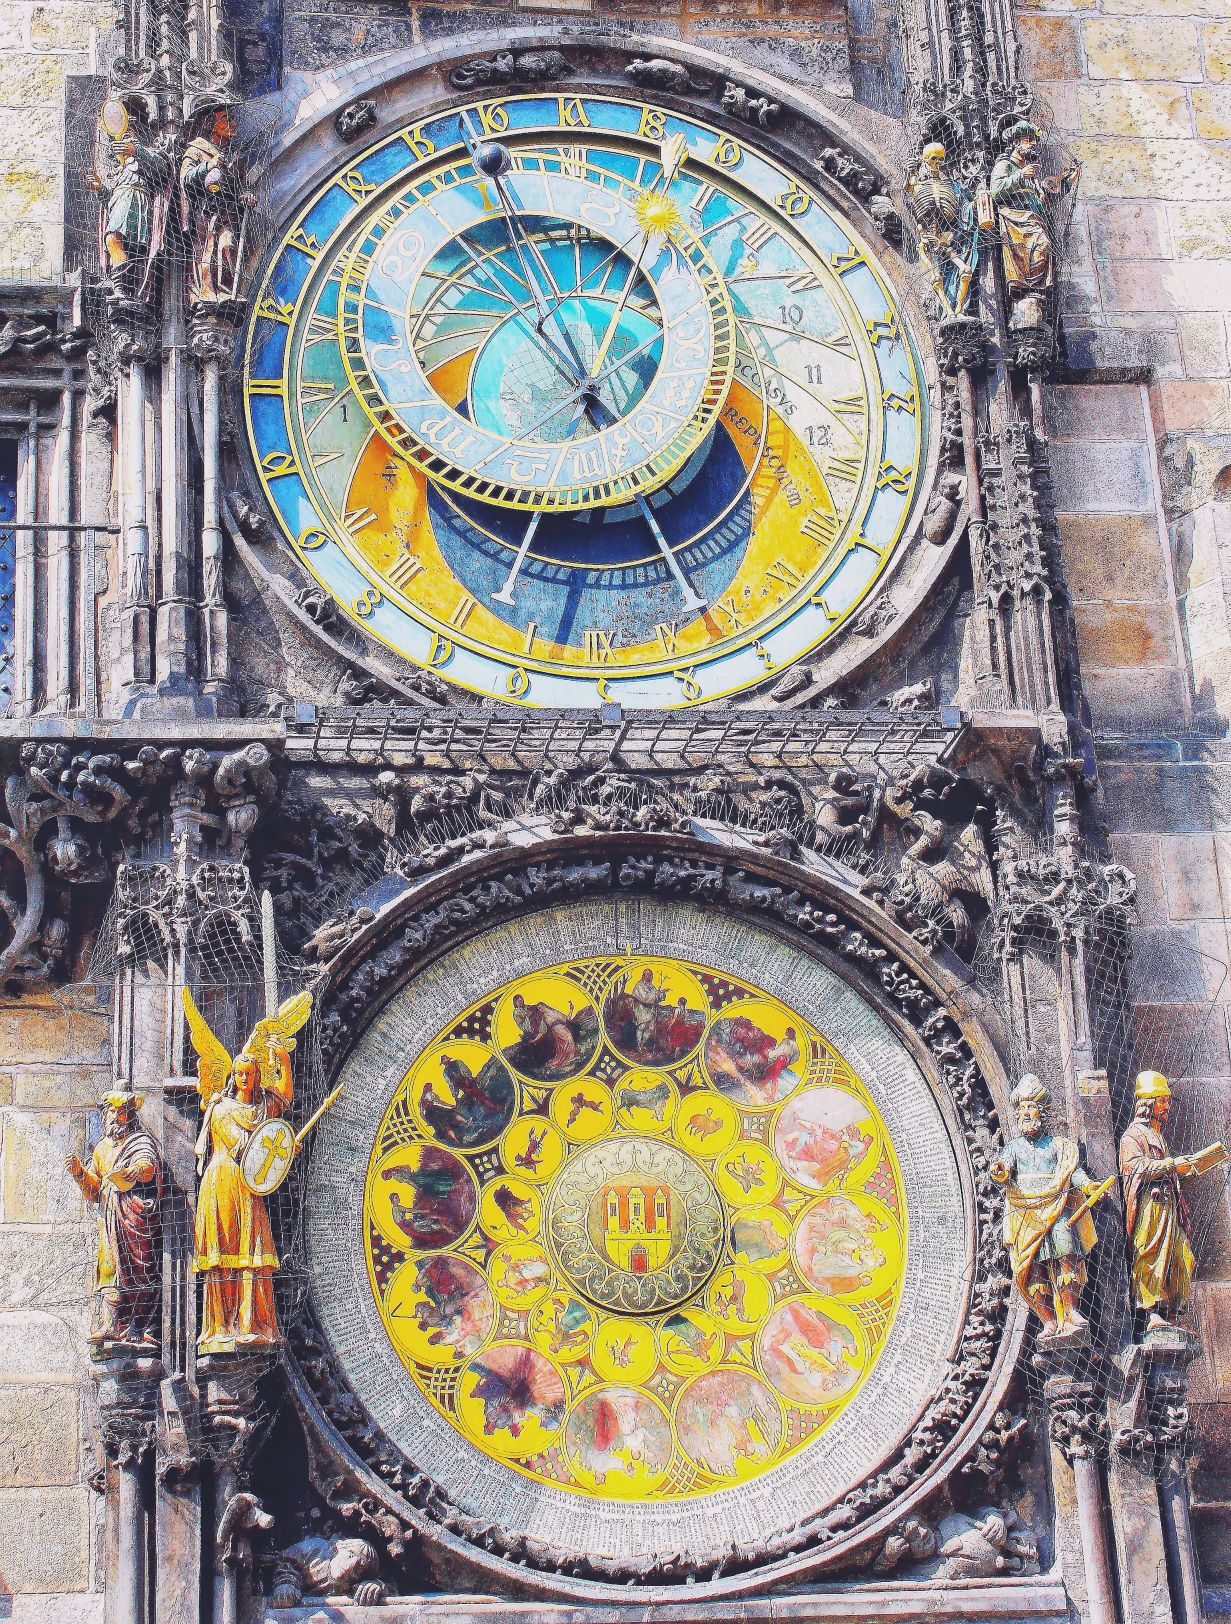 Astronomical clock Every hour, on the hour from 8am to 8pm, since 1490, the Old Town hall's Astronomical Clock comes alive. The details are impressive with the phases of the Zodiac and sunrise and sunset times. The 12 saints, visible through a window above the clock face, march by while four figures representing Greed, Vanity, Death and Turk nod their heads.